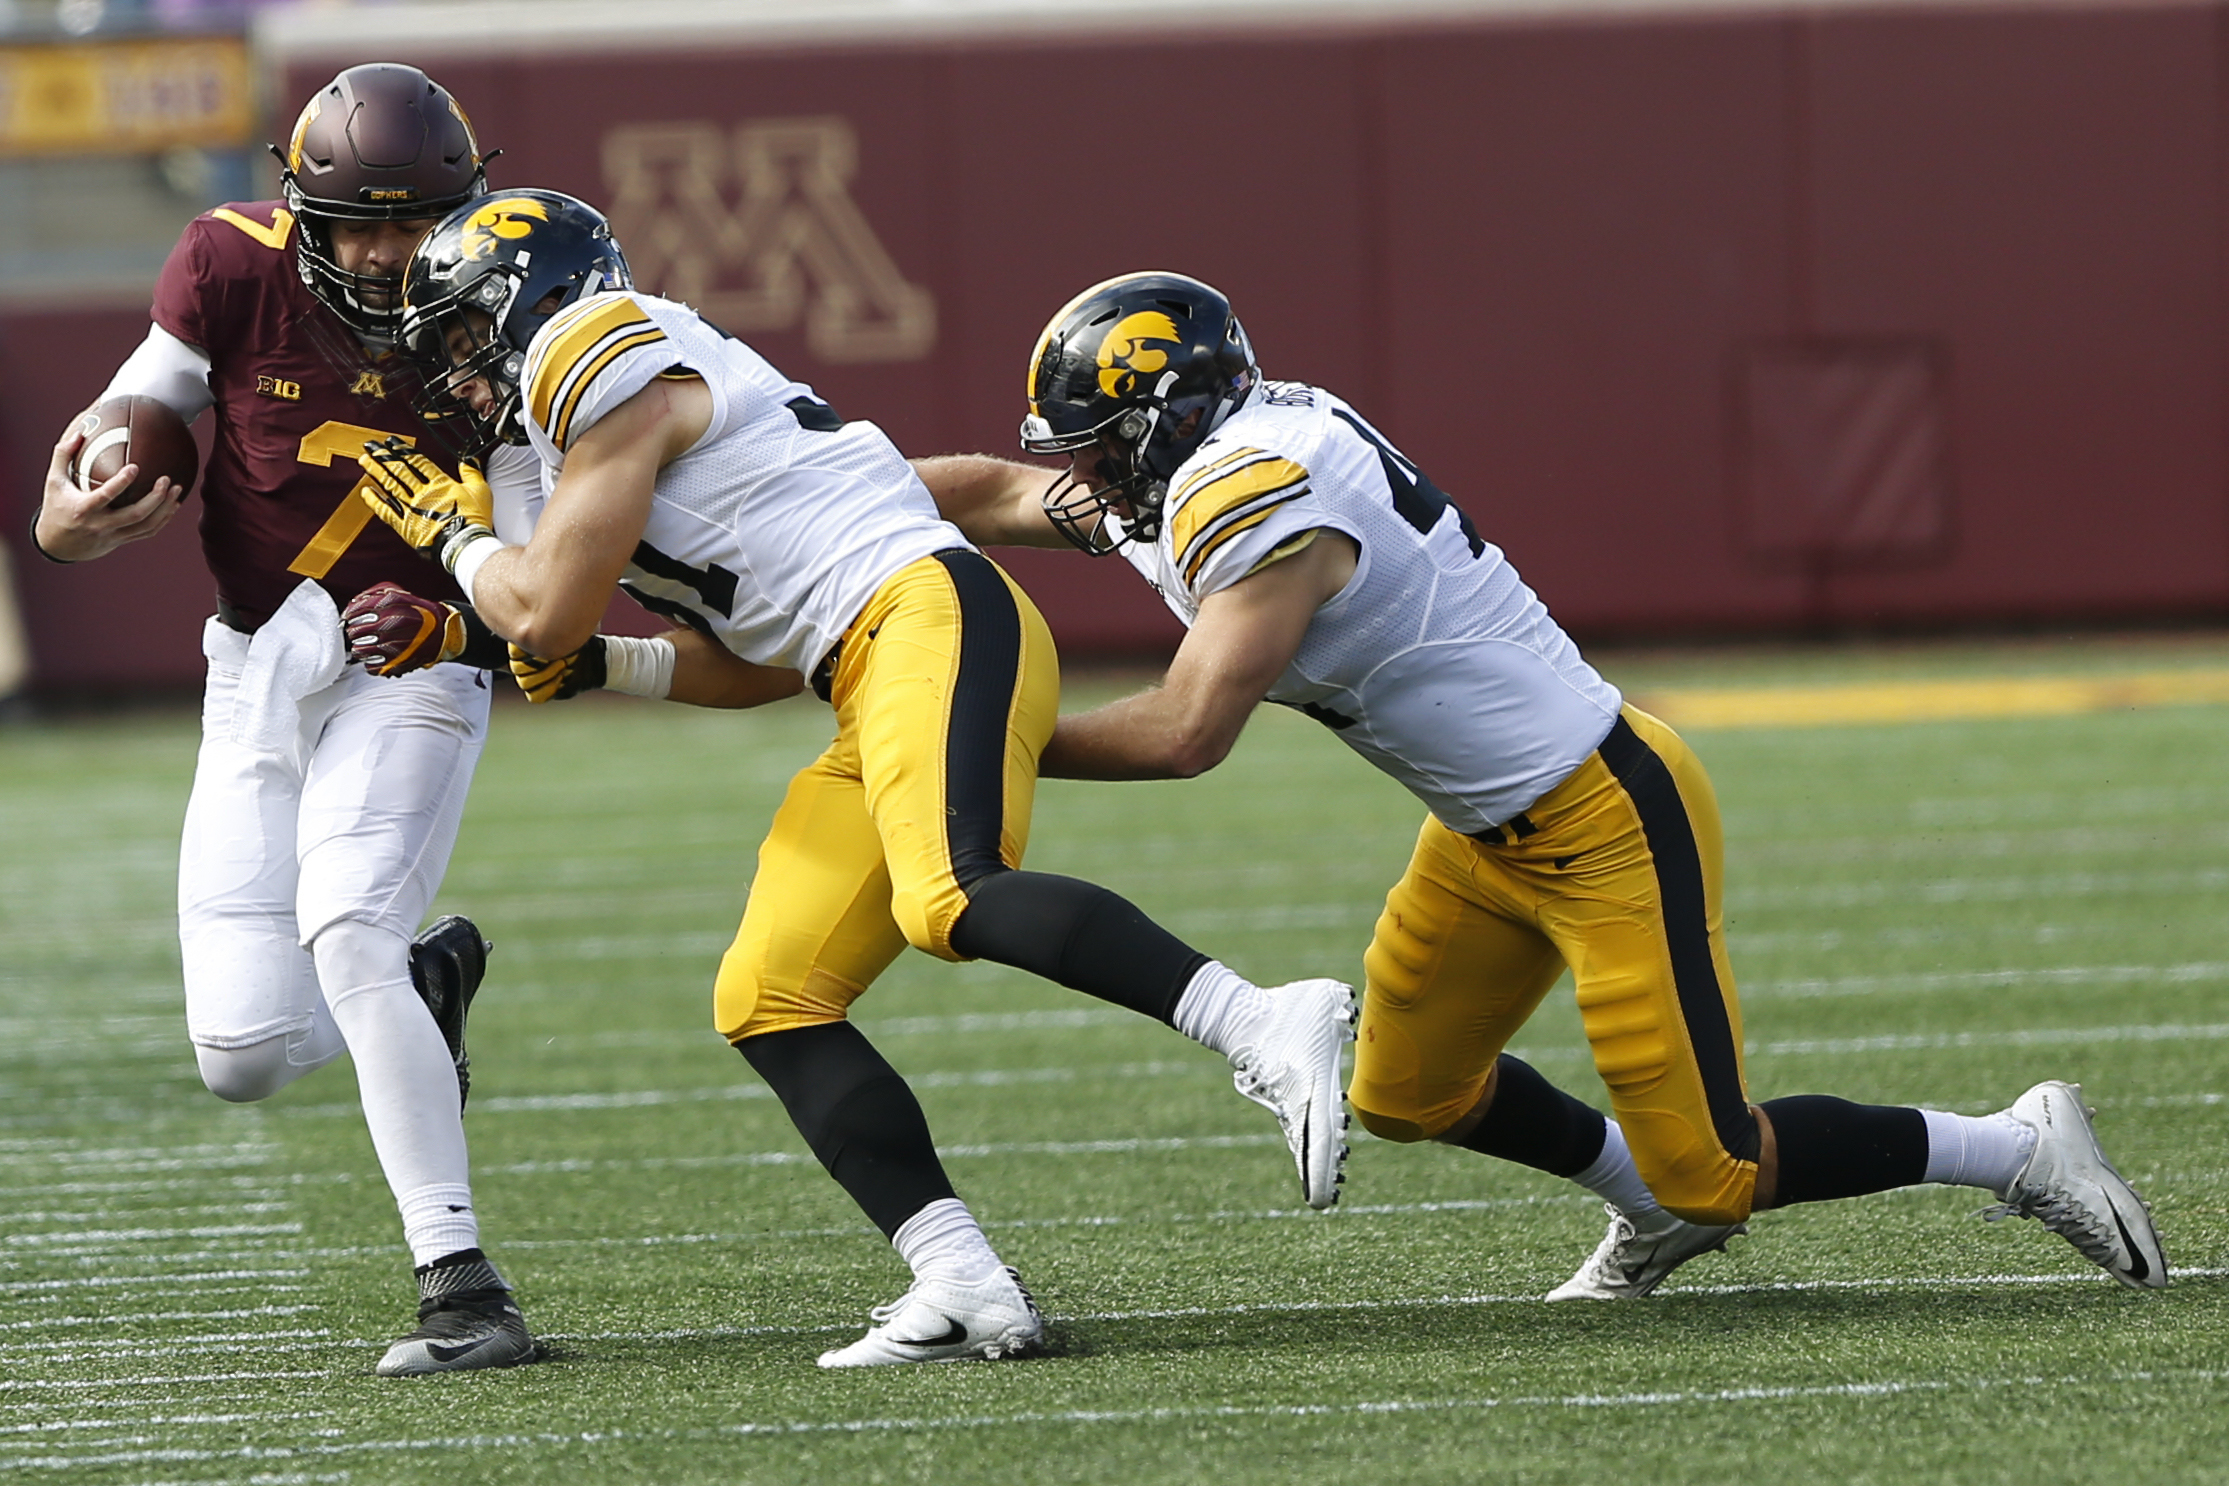 Minnesota quarterback Mitch Leidner (7) is pushed across the field by Iowa linebacker Aaron Mends during an NCAA college football game Saturday, Oct. 8, 2016, in Minneapolis. Iowa won 14-7.(AP Photo/Stacy Bengs)